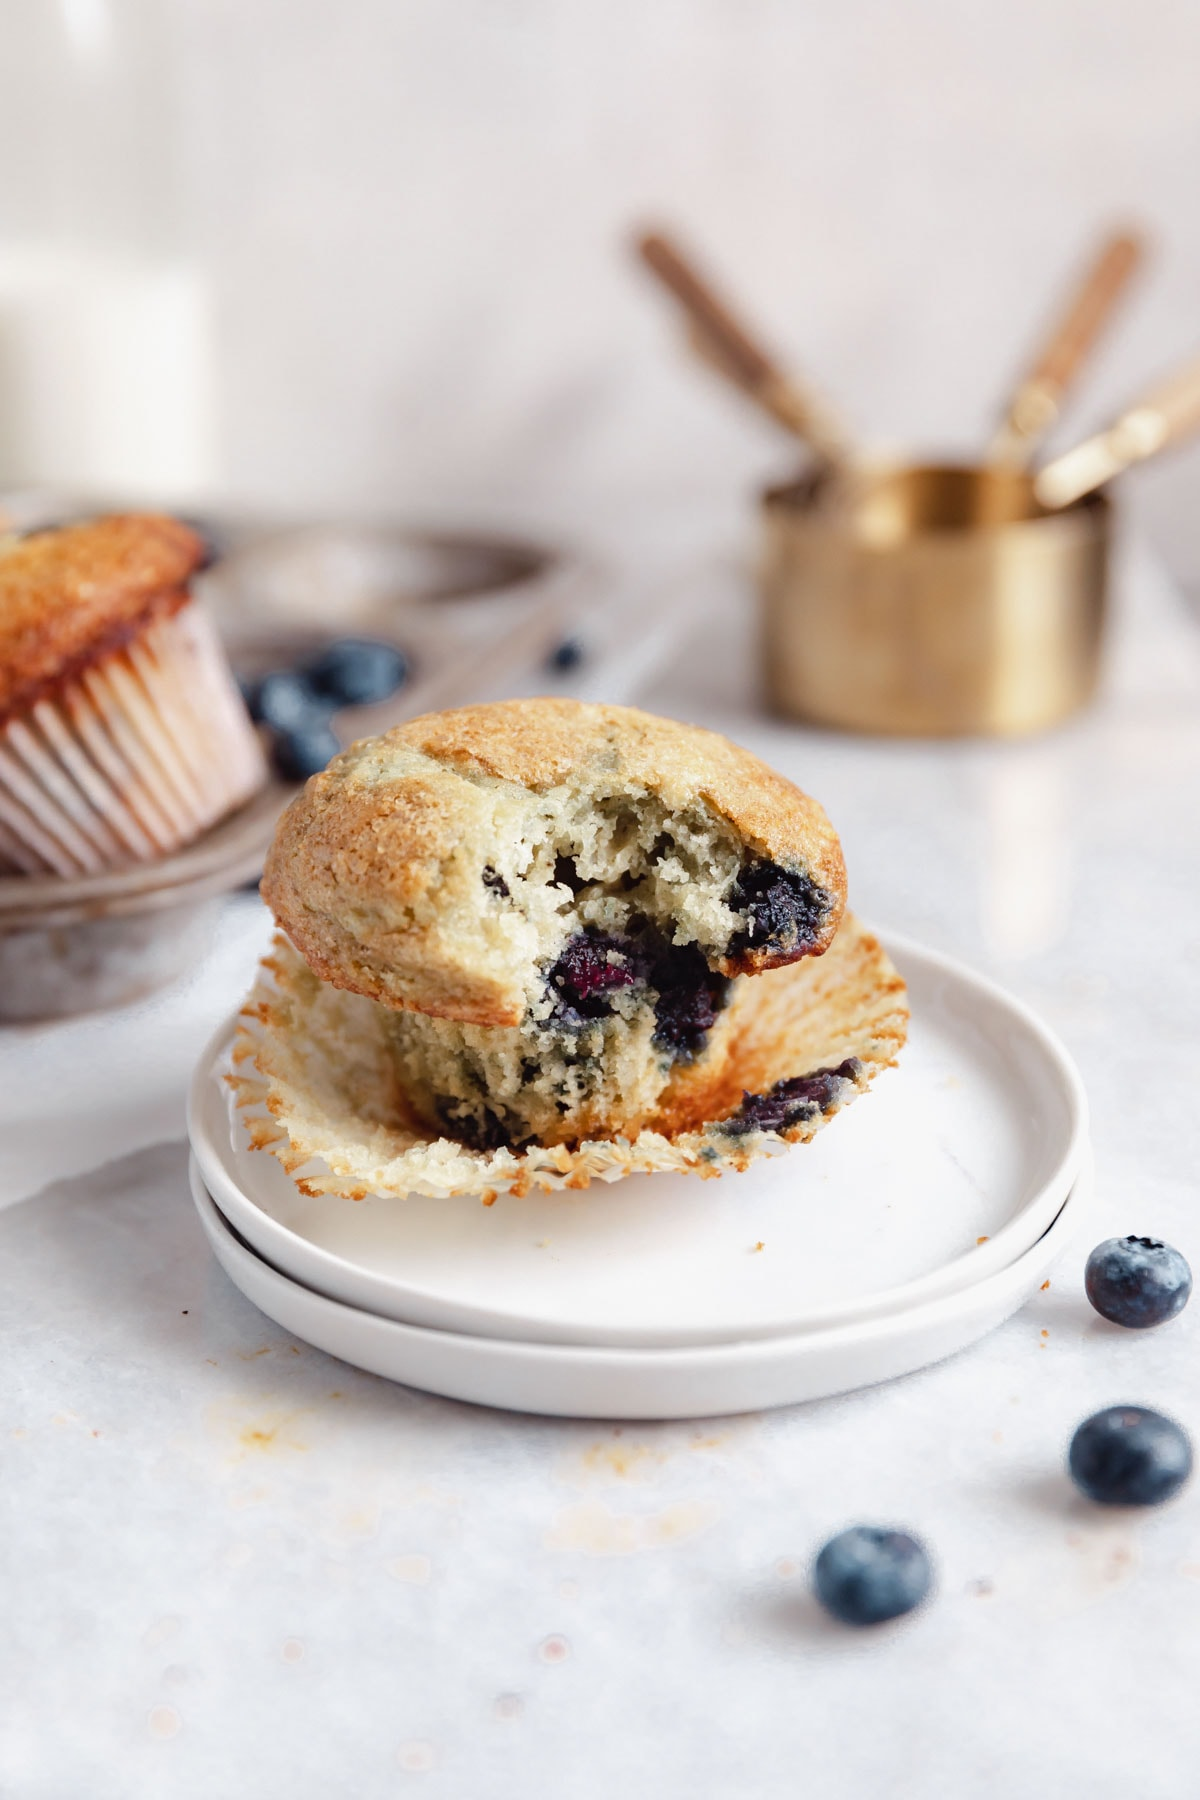 blueberry muffin with a bite taken out